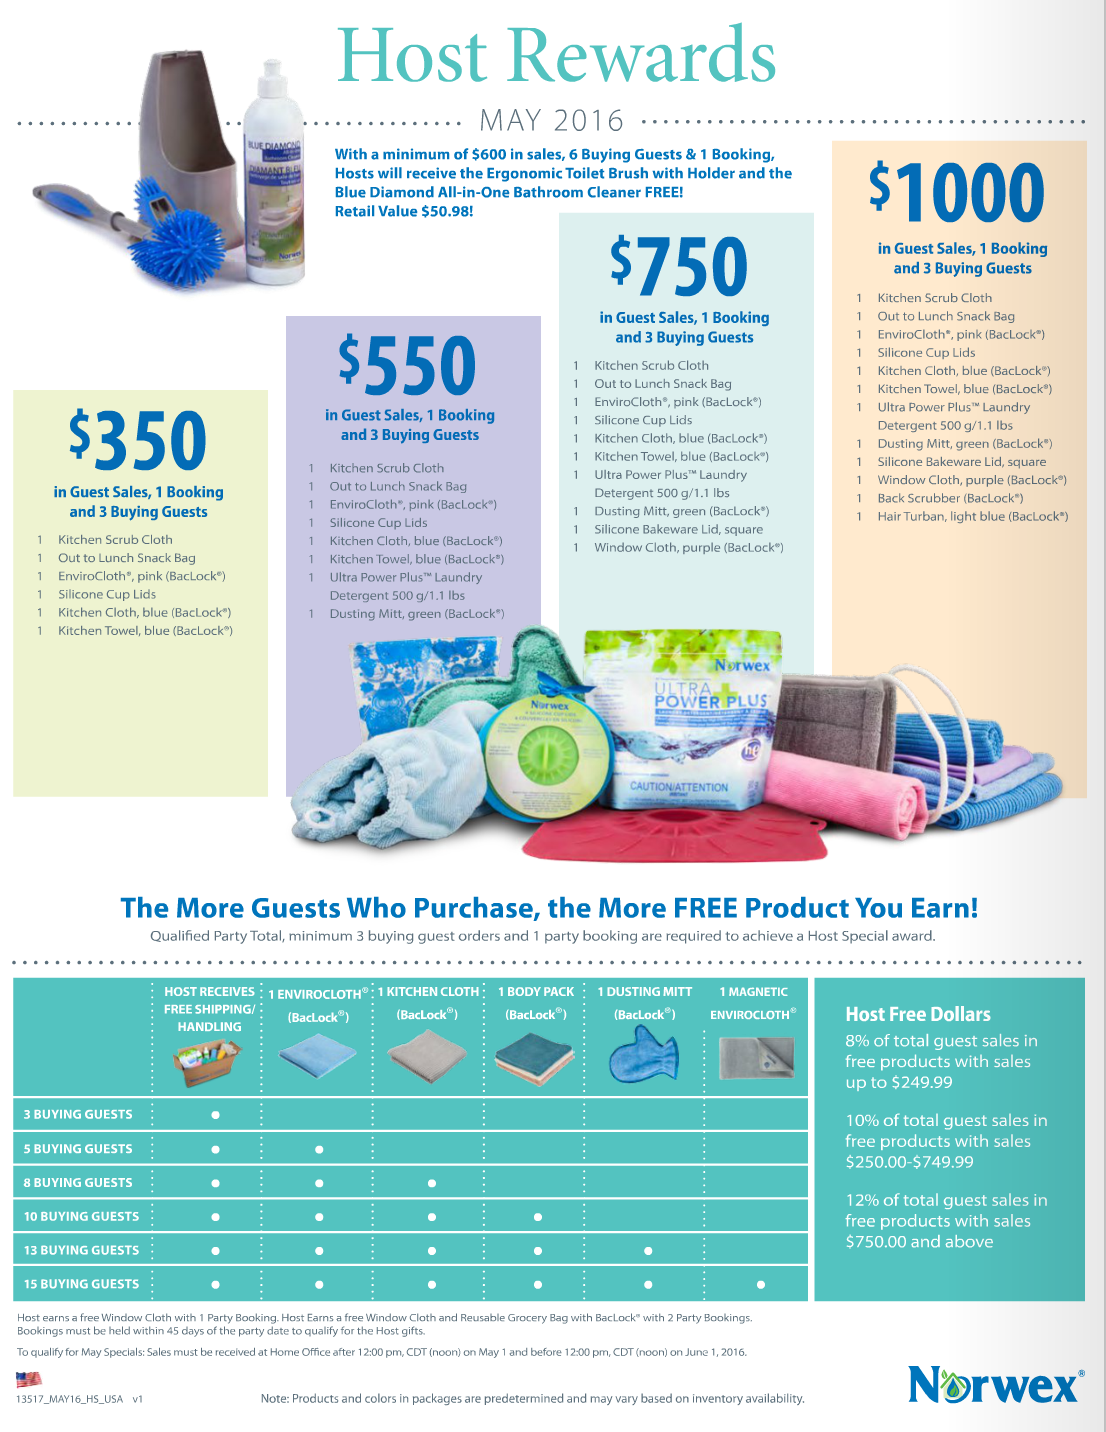 Norwex_Hostess_Gifts_Free